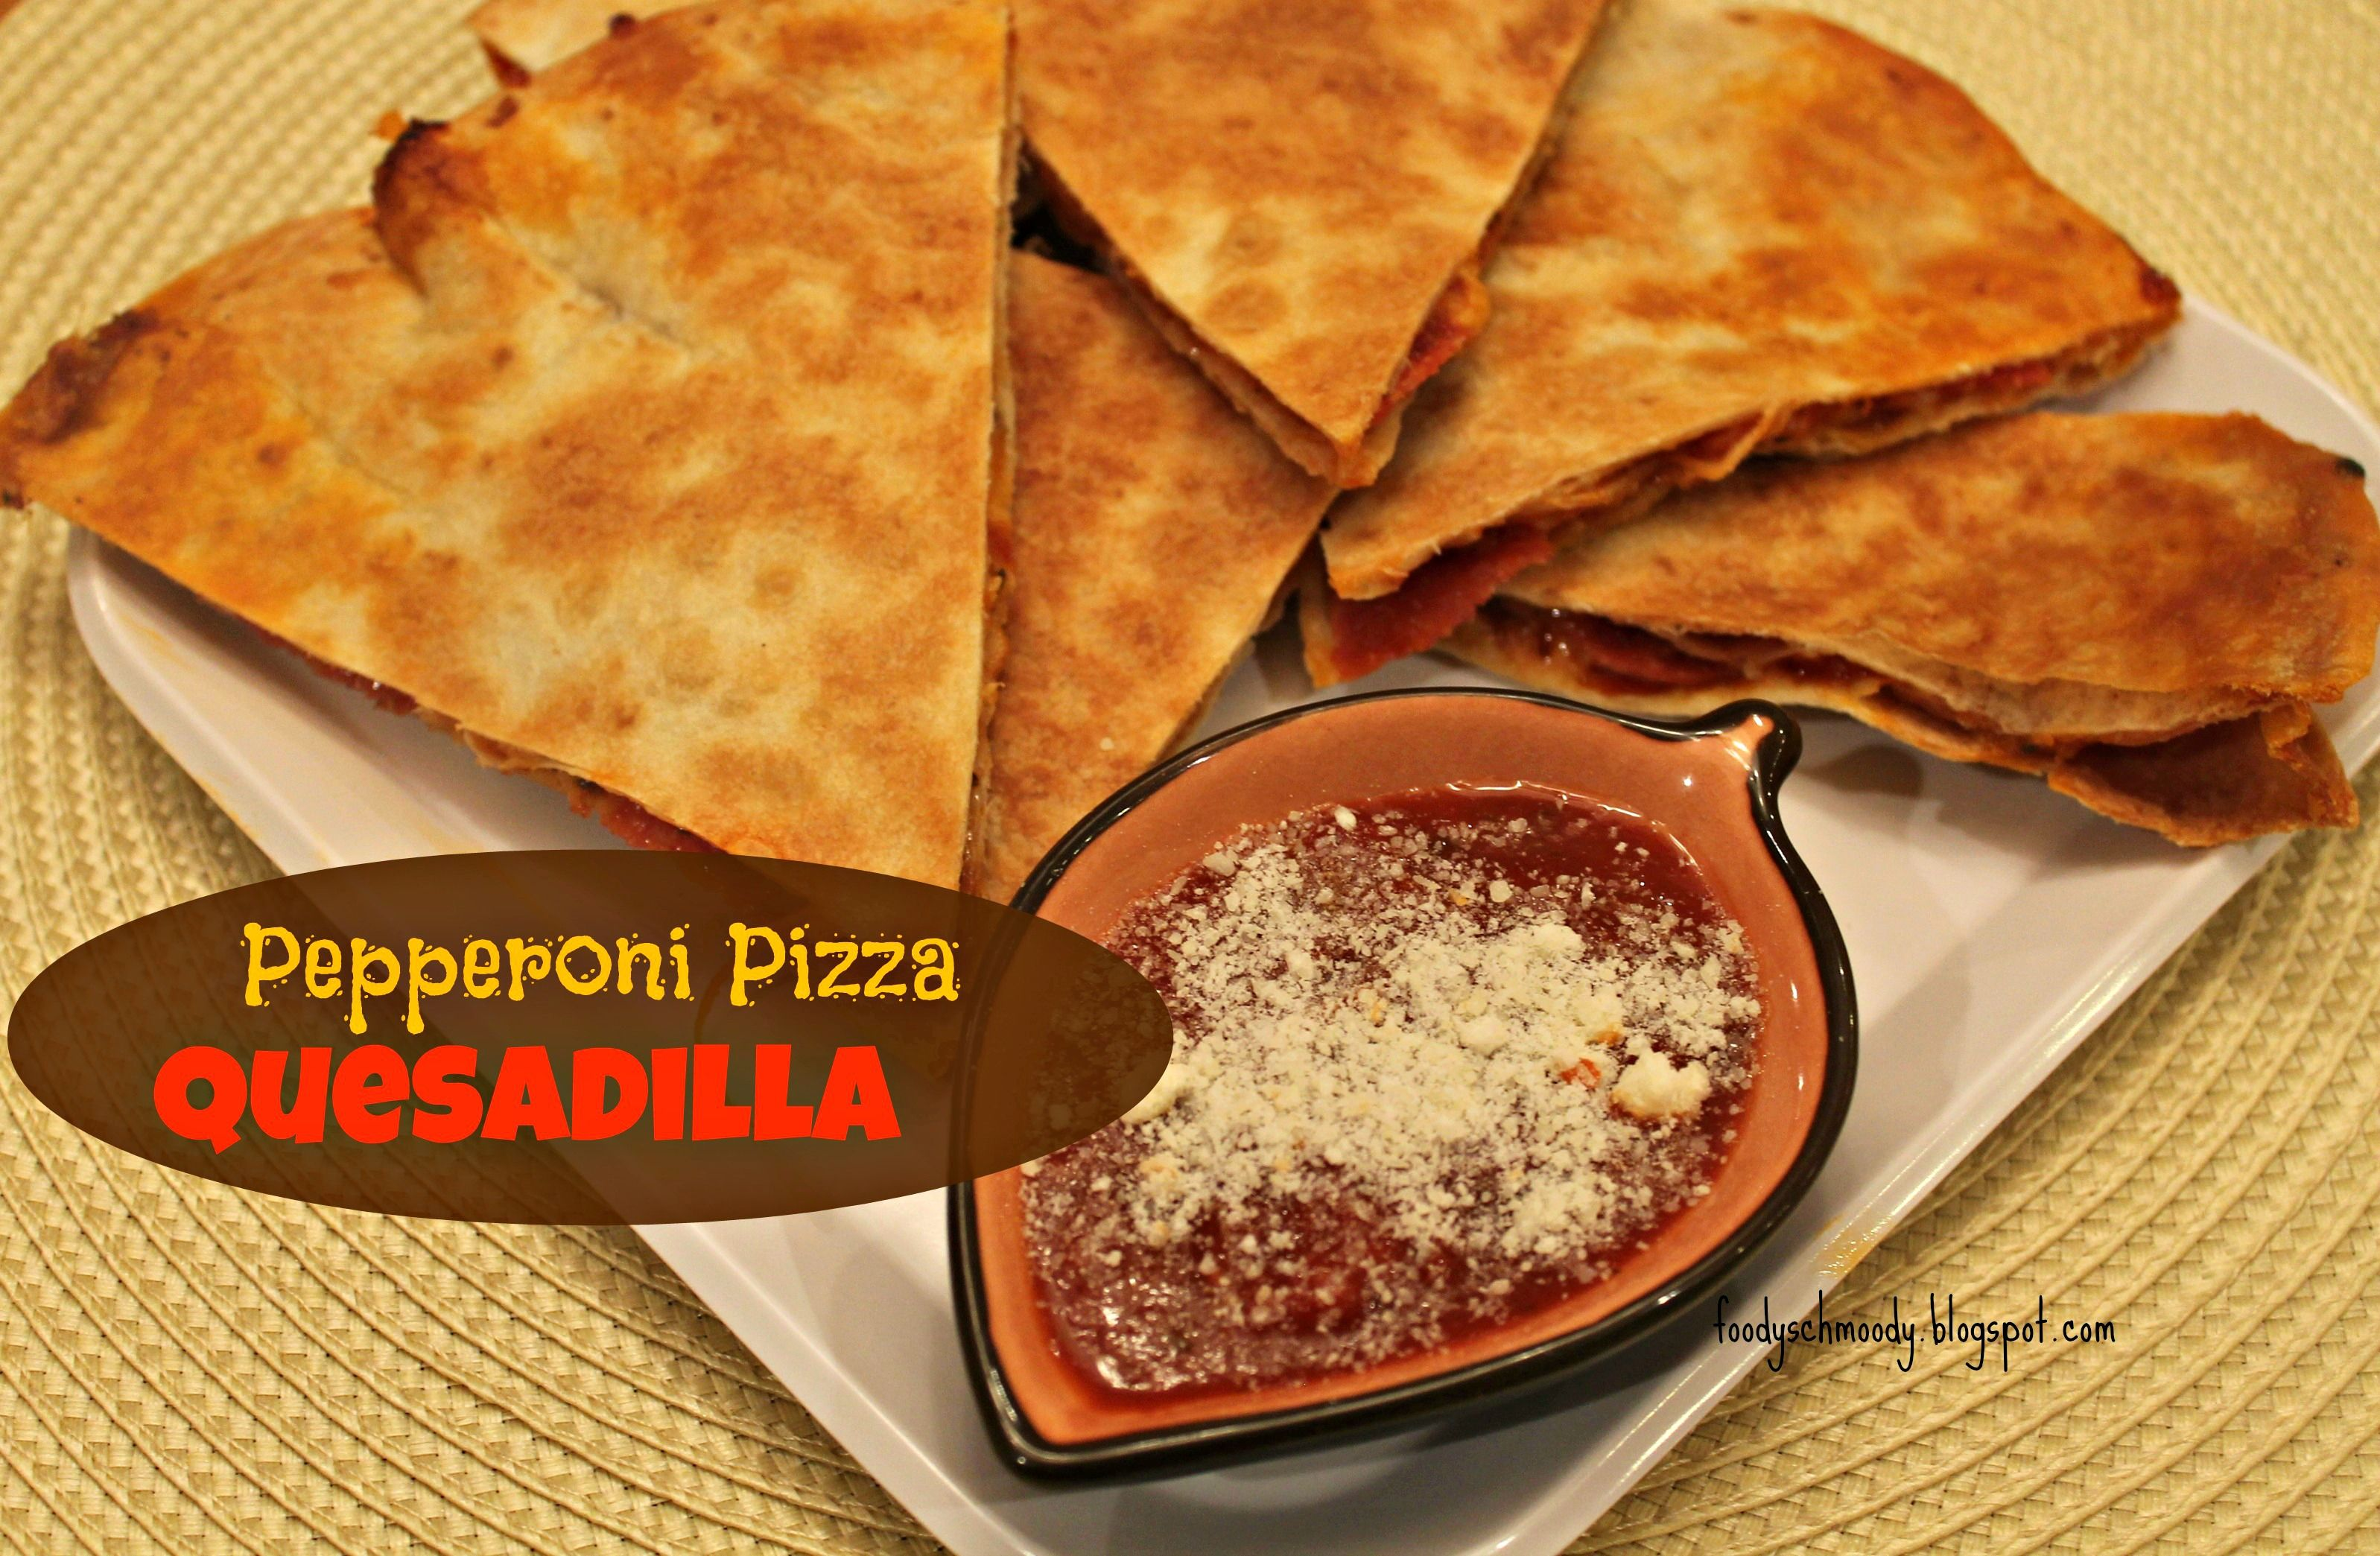 Pepperoni Pizza Quesadilla #snack #pizza #quesadilla Serve it as a meal w/ a salad or serve as an appetizer or game day snack.  Kids and grown ups alike will fall in love with this